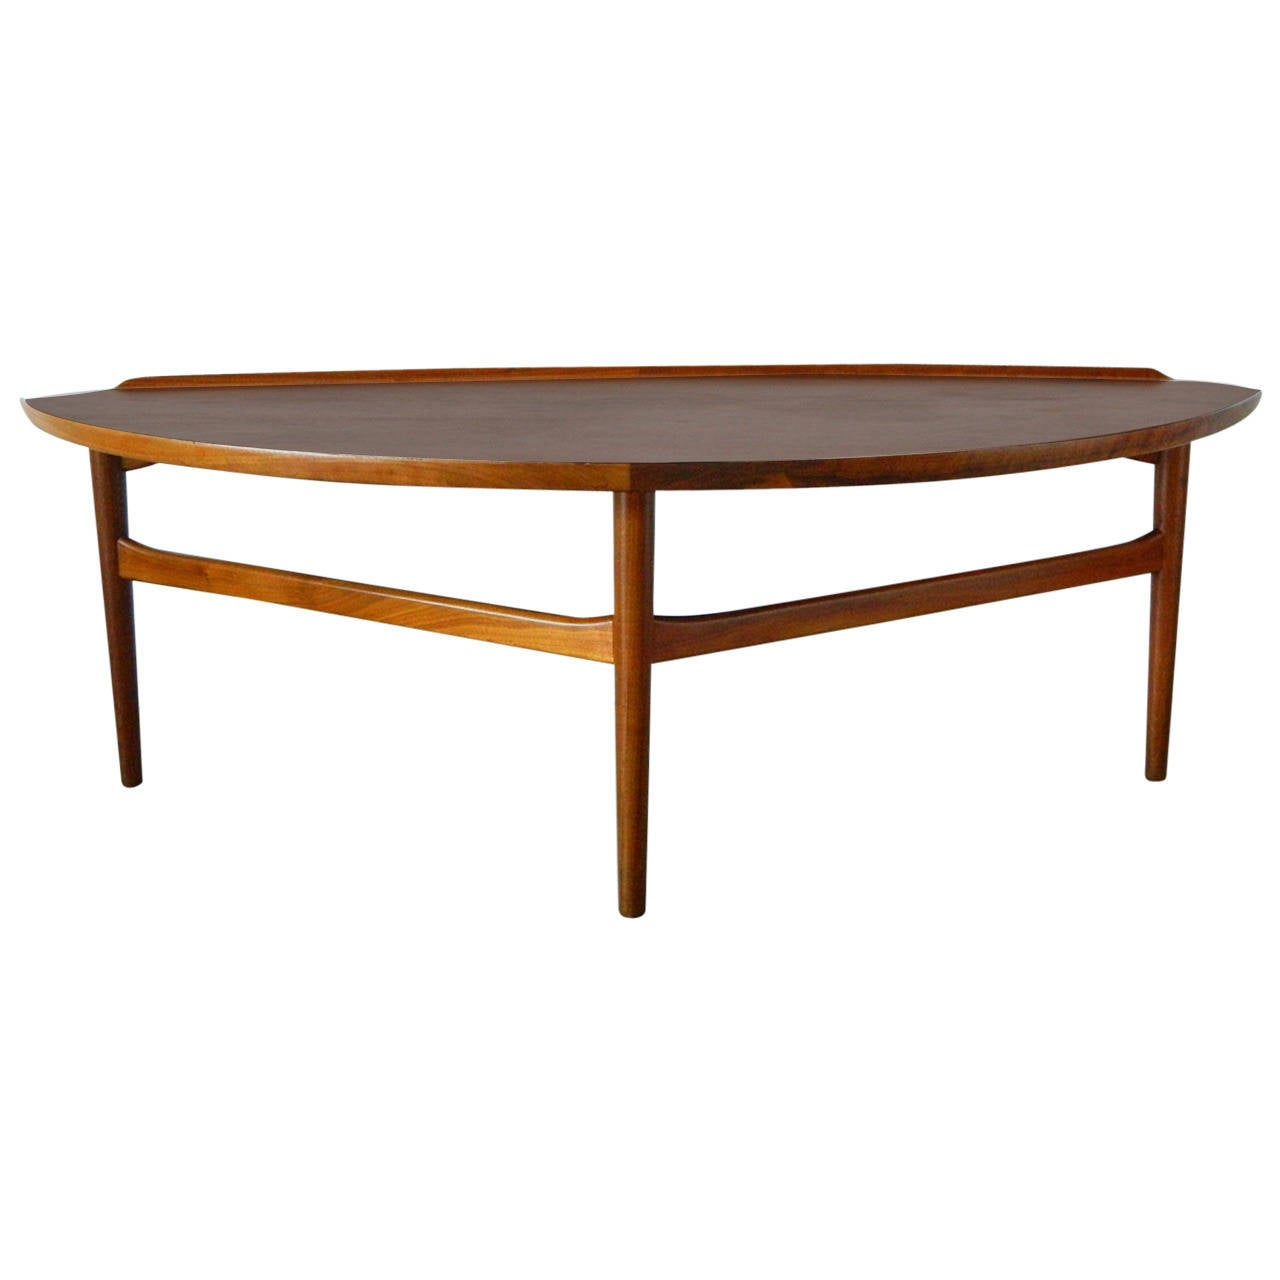 Finn juhl walnut coffee table for baker furniture at 1stdibs Baker coffee table